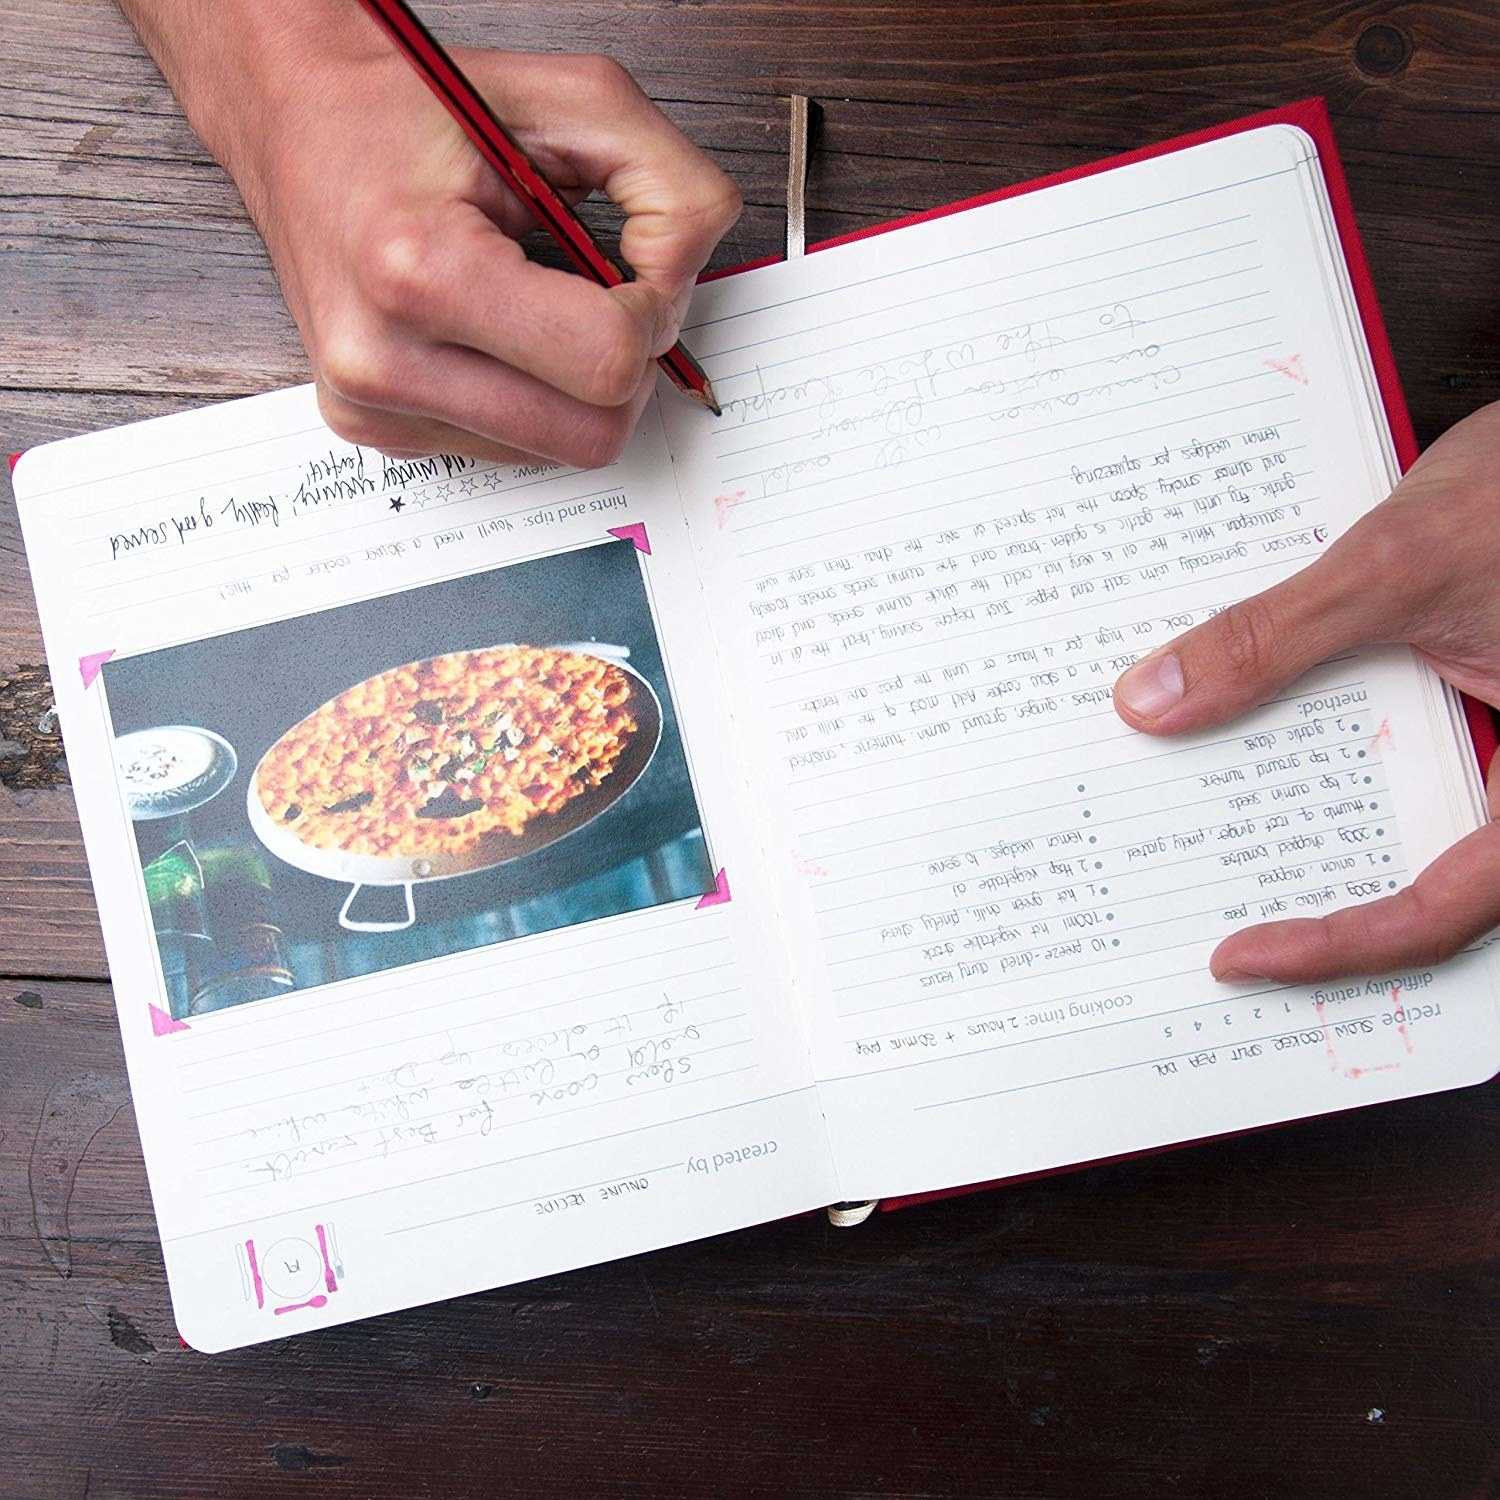 inside of the recipe book with a picture of food taped to the page